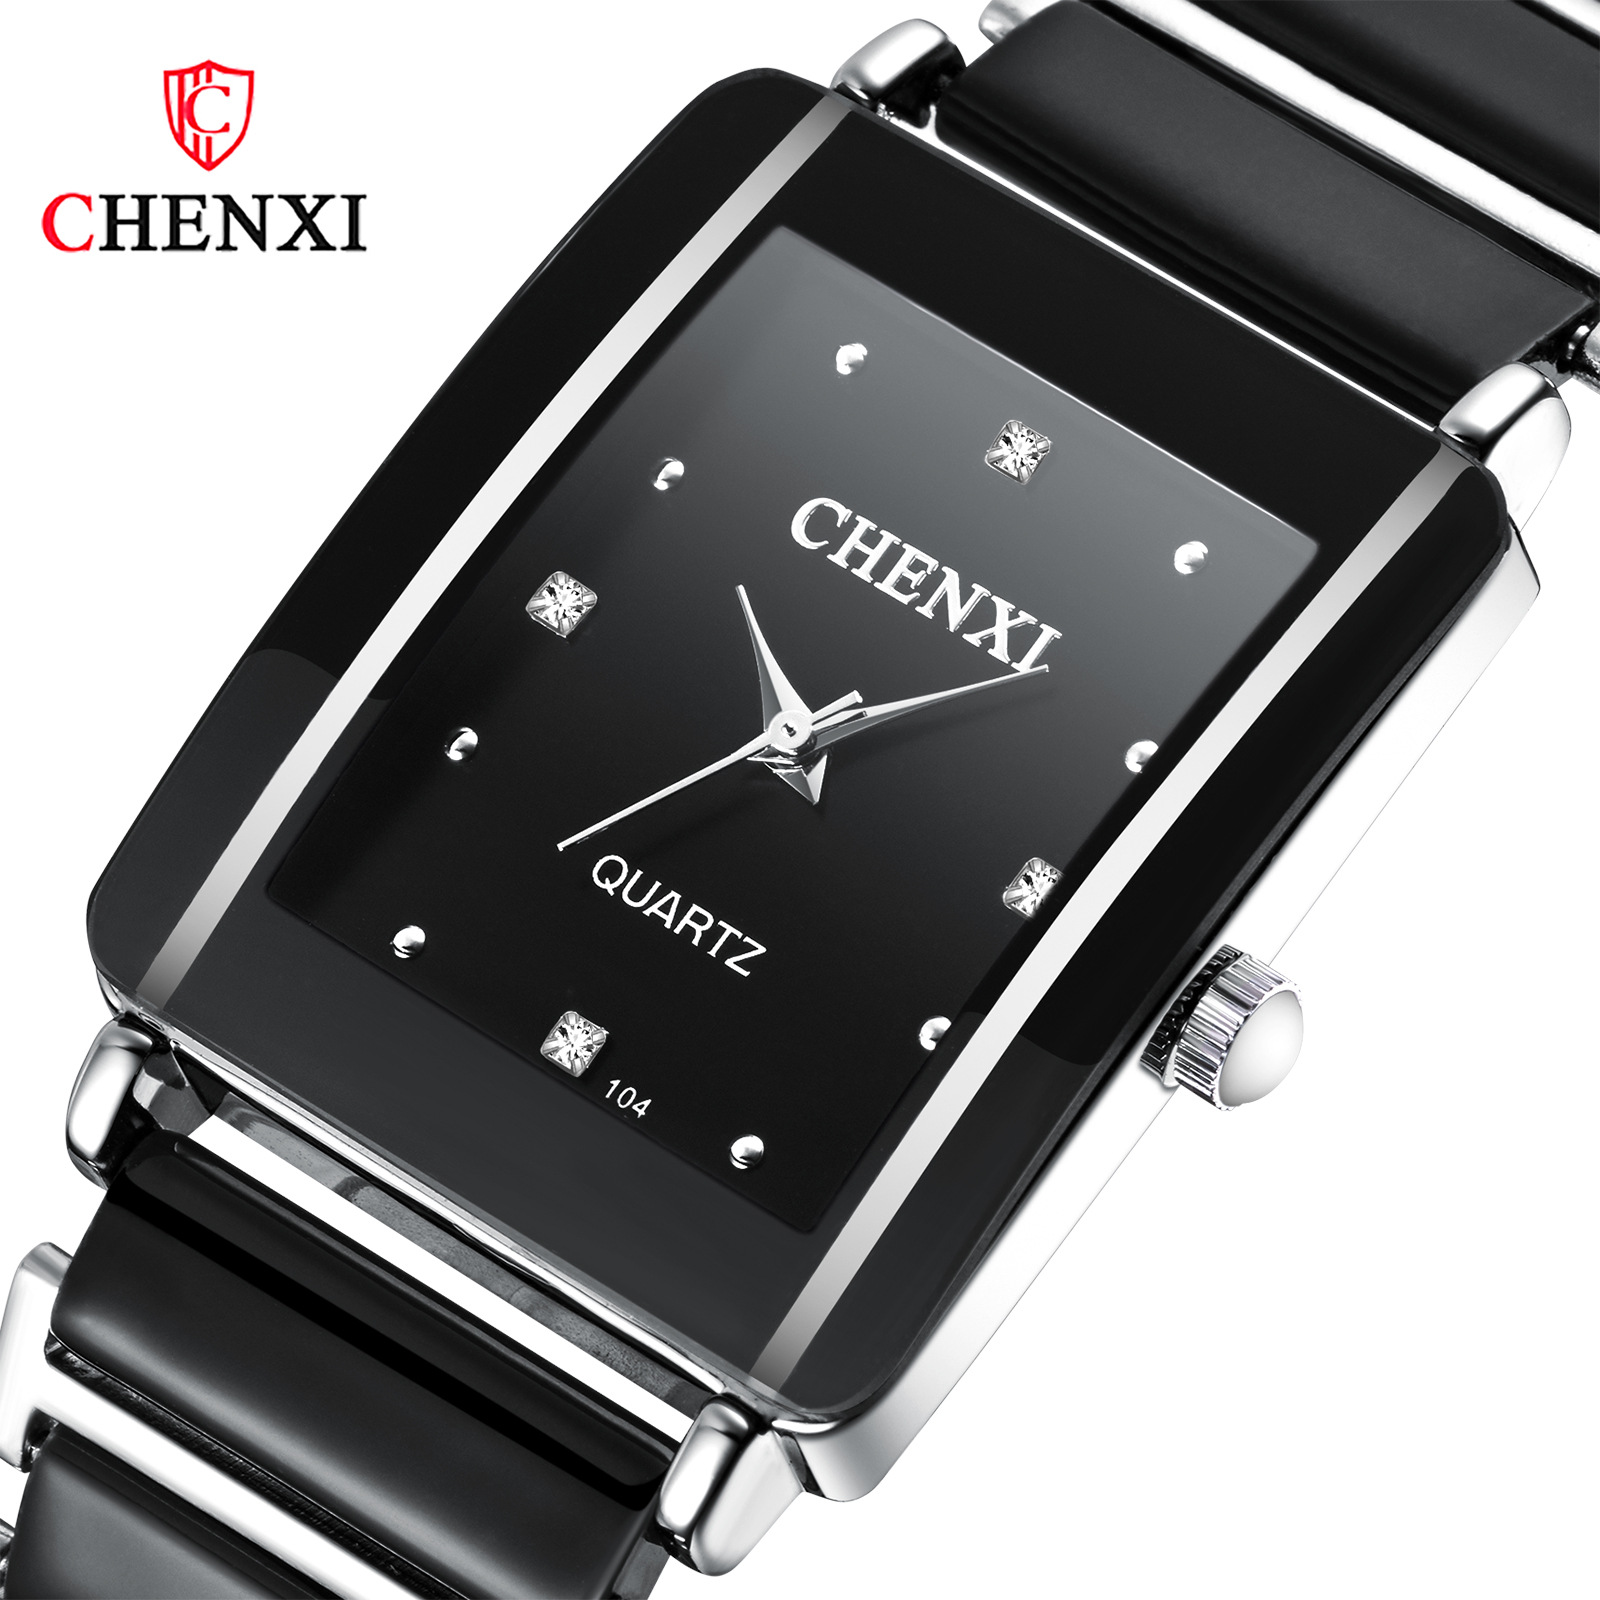 Rectangle Lover's Watch Quartz Fashion Ceramic Couple Watches Ultra-thin Brief Chic Watches With Diamond Wristwatch